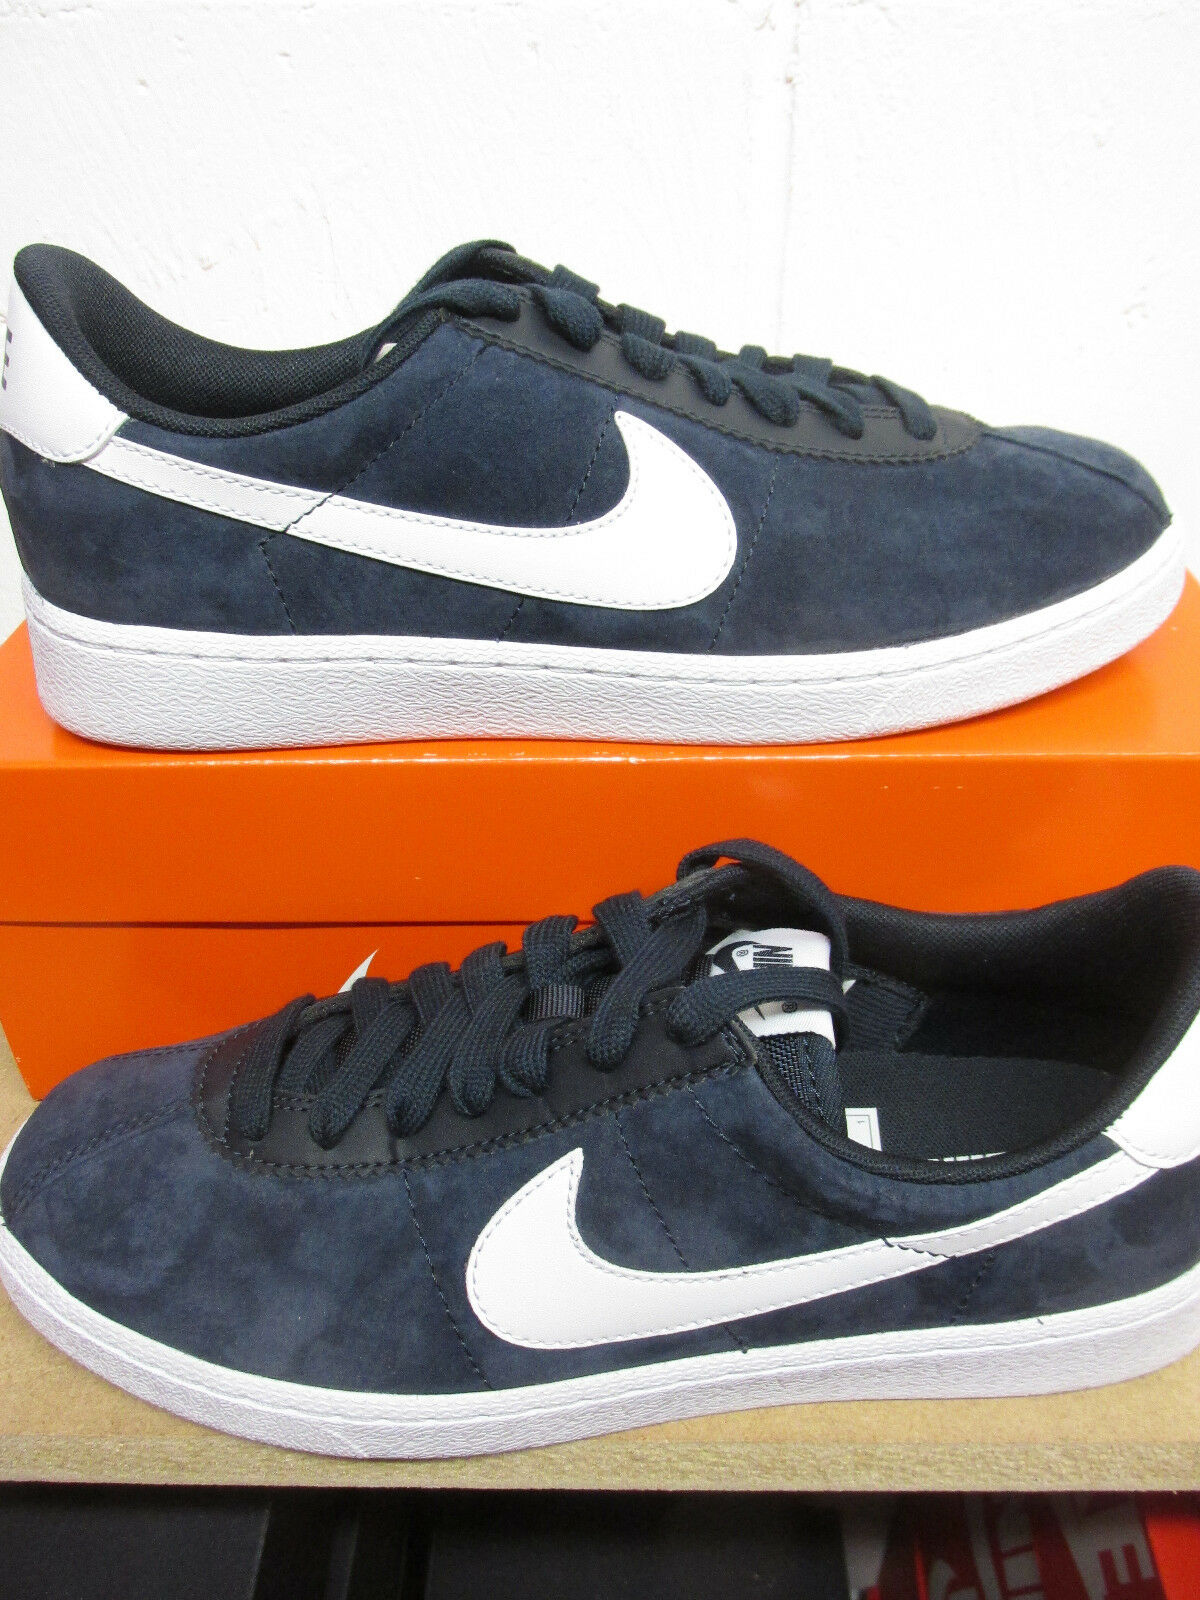 Nike Bruin Mens Trainers 845056 401 Sneakers Shoes